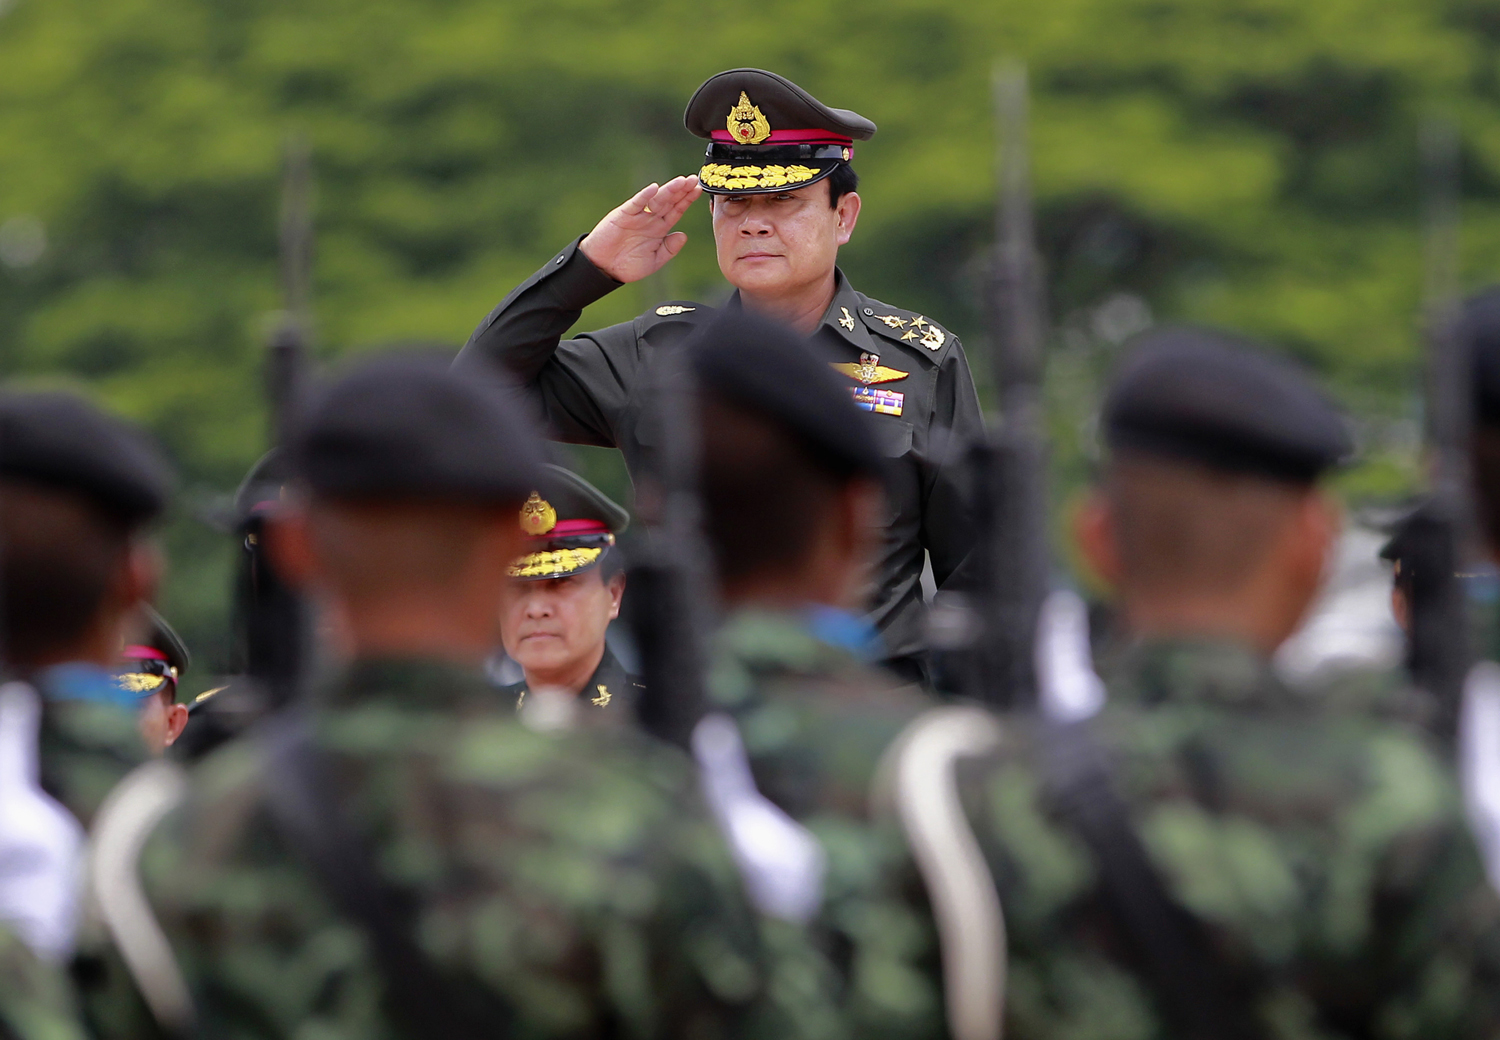 Thailand's newly appointed Prime Minister Prayuth Chan-ocha reviews honor guards during a military ceremony in Chonburi province, on the outskirts of Bangkok on August 21, 2014.